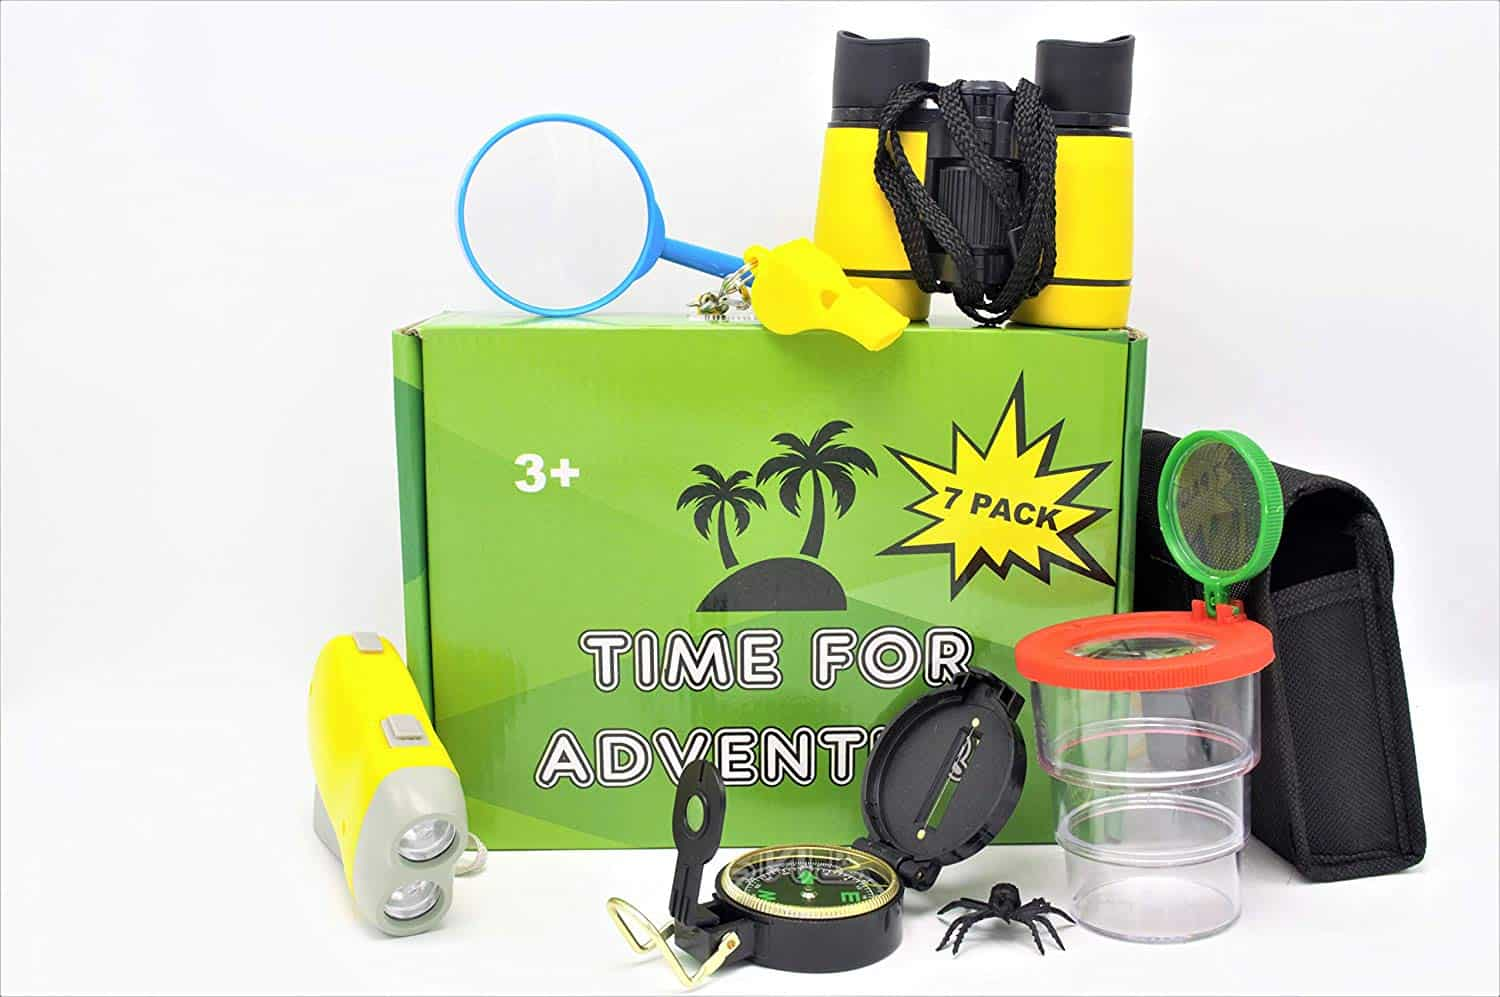 Camping Gifts for Grandmas: Kids camping adventure kit